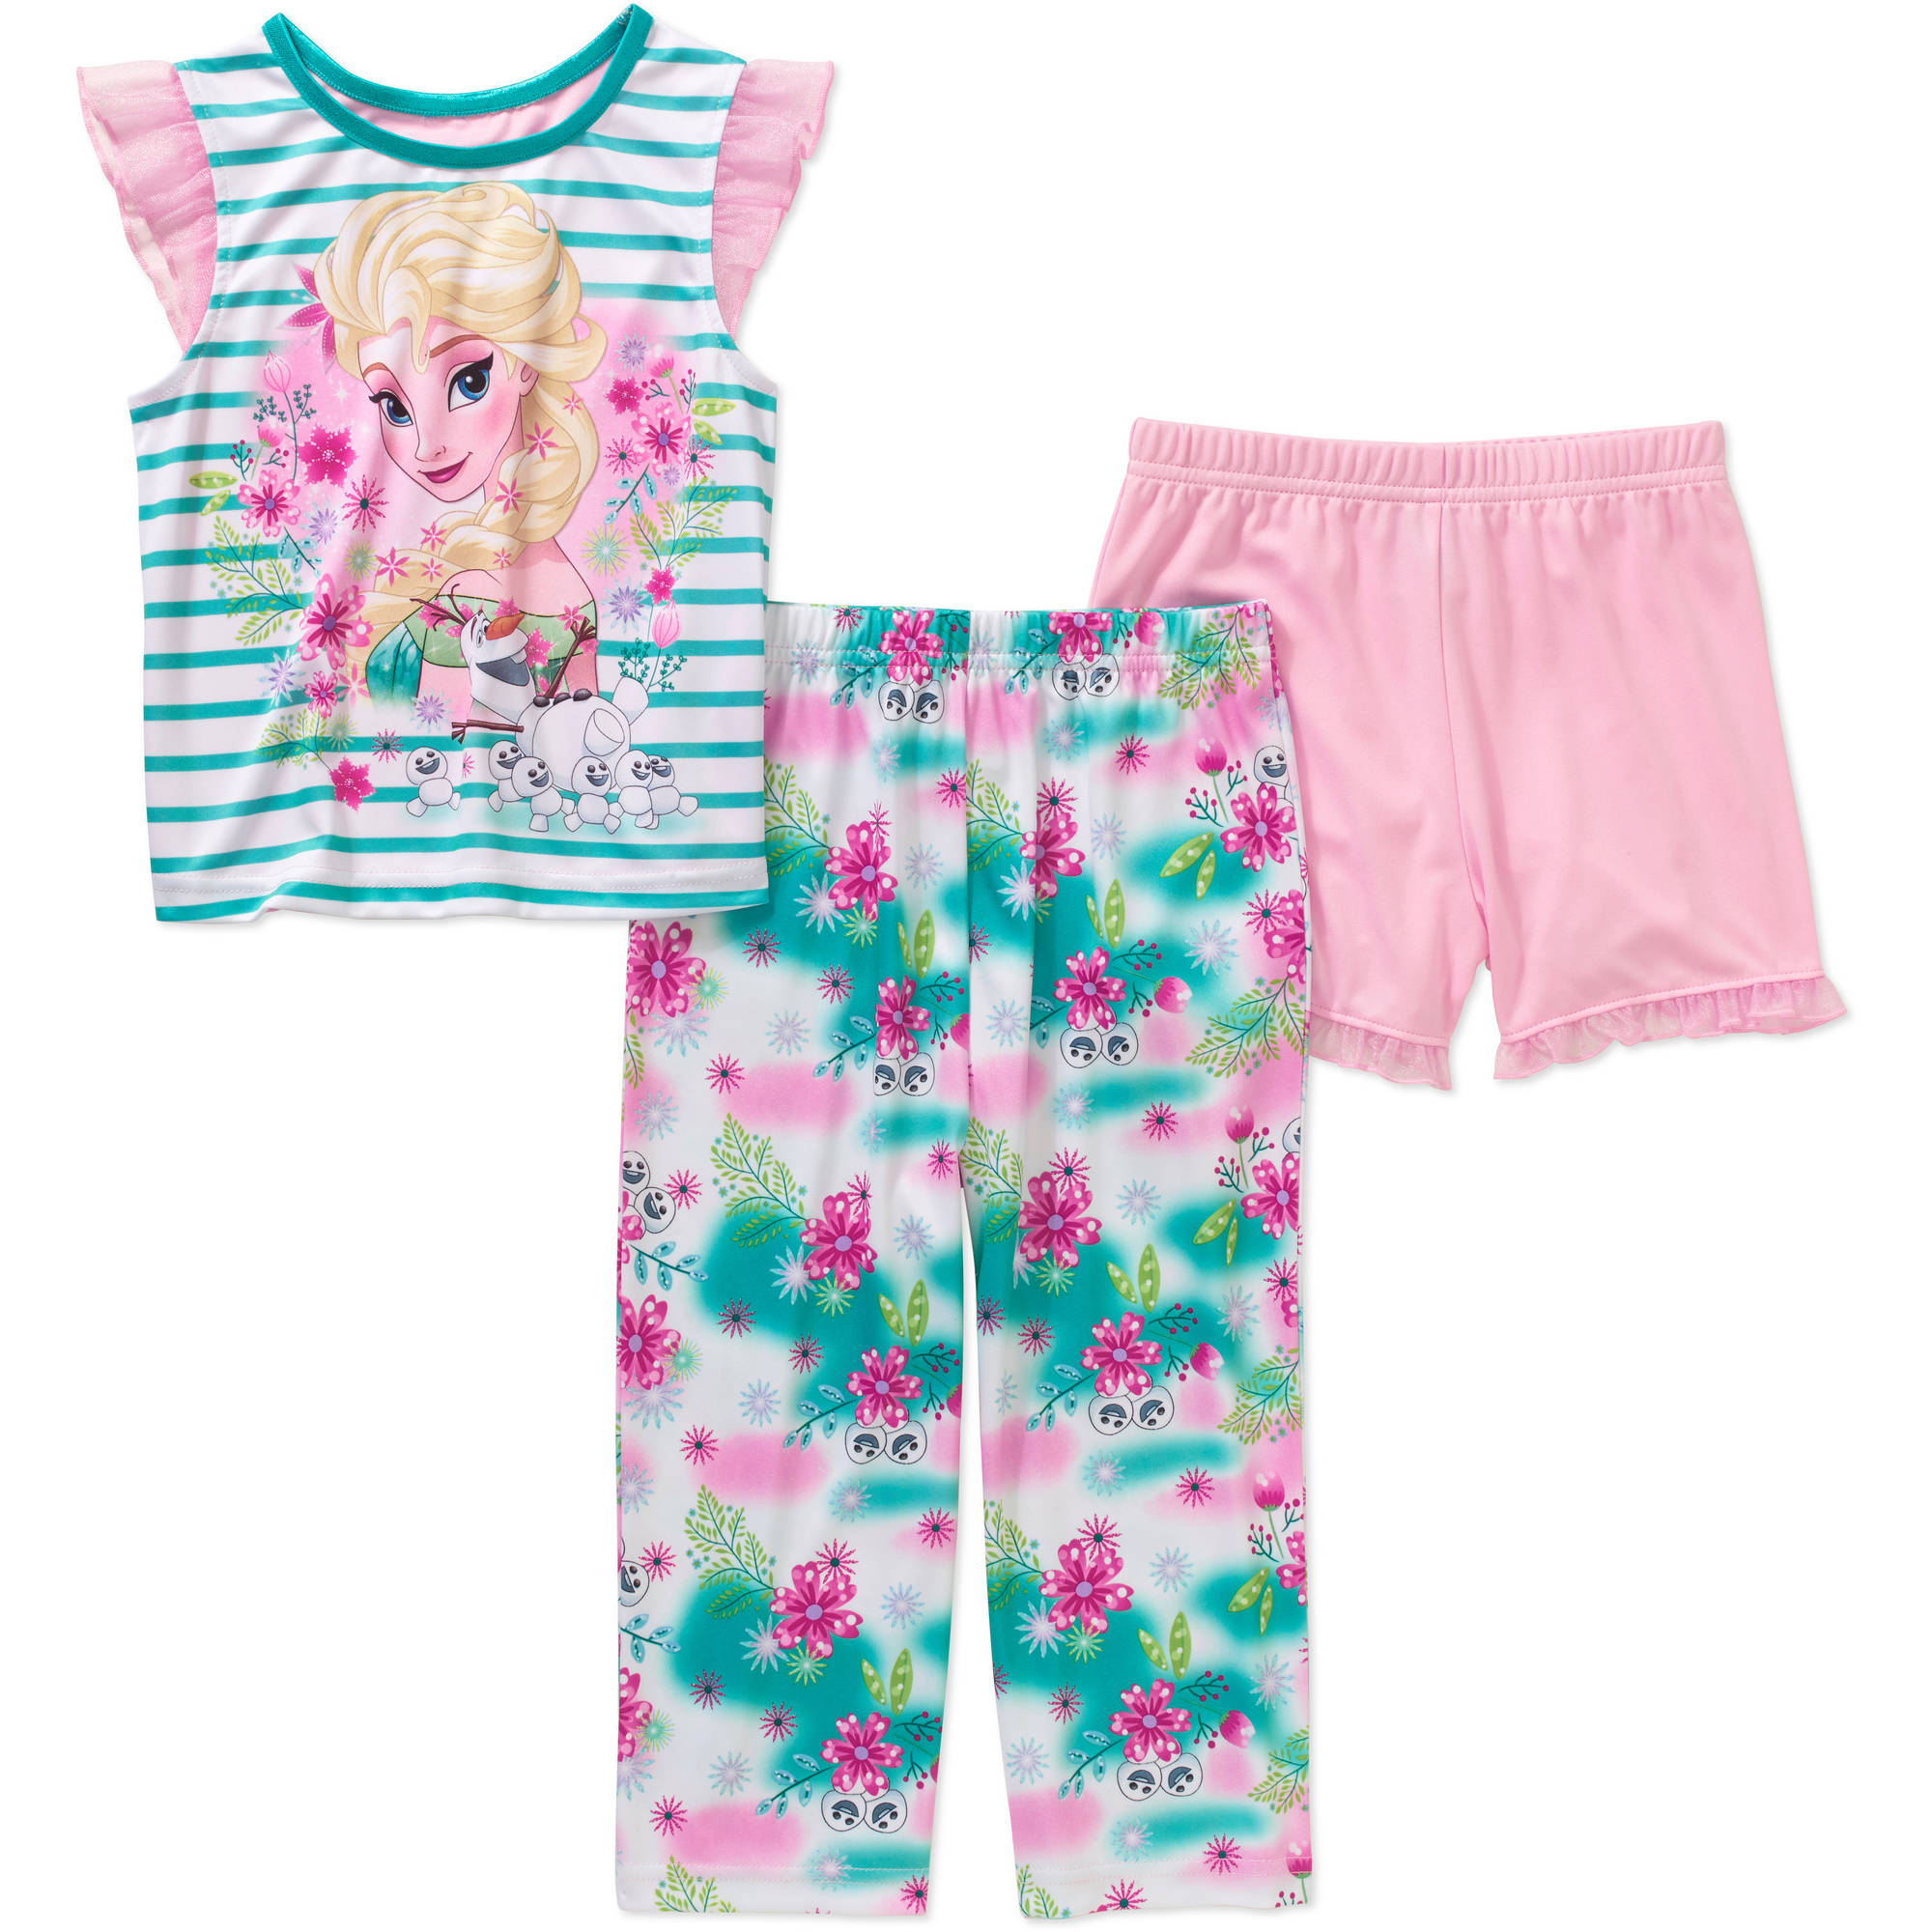 Disney Frozen Toddler Girl Sleeveless 3-Piece Sleepwear Set